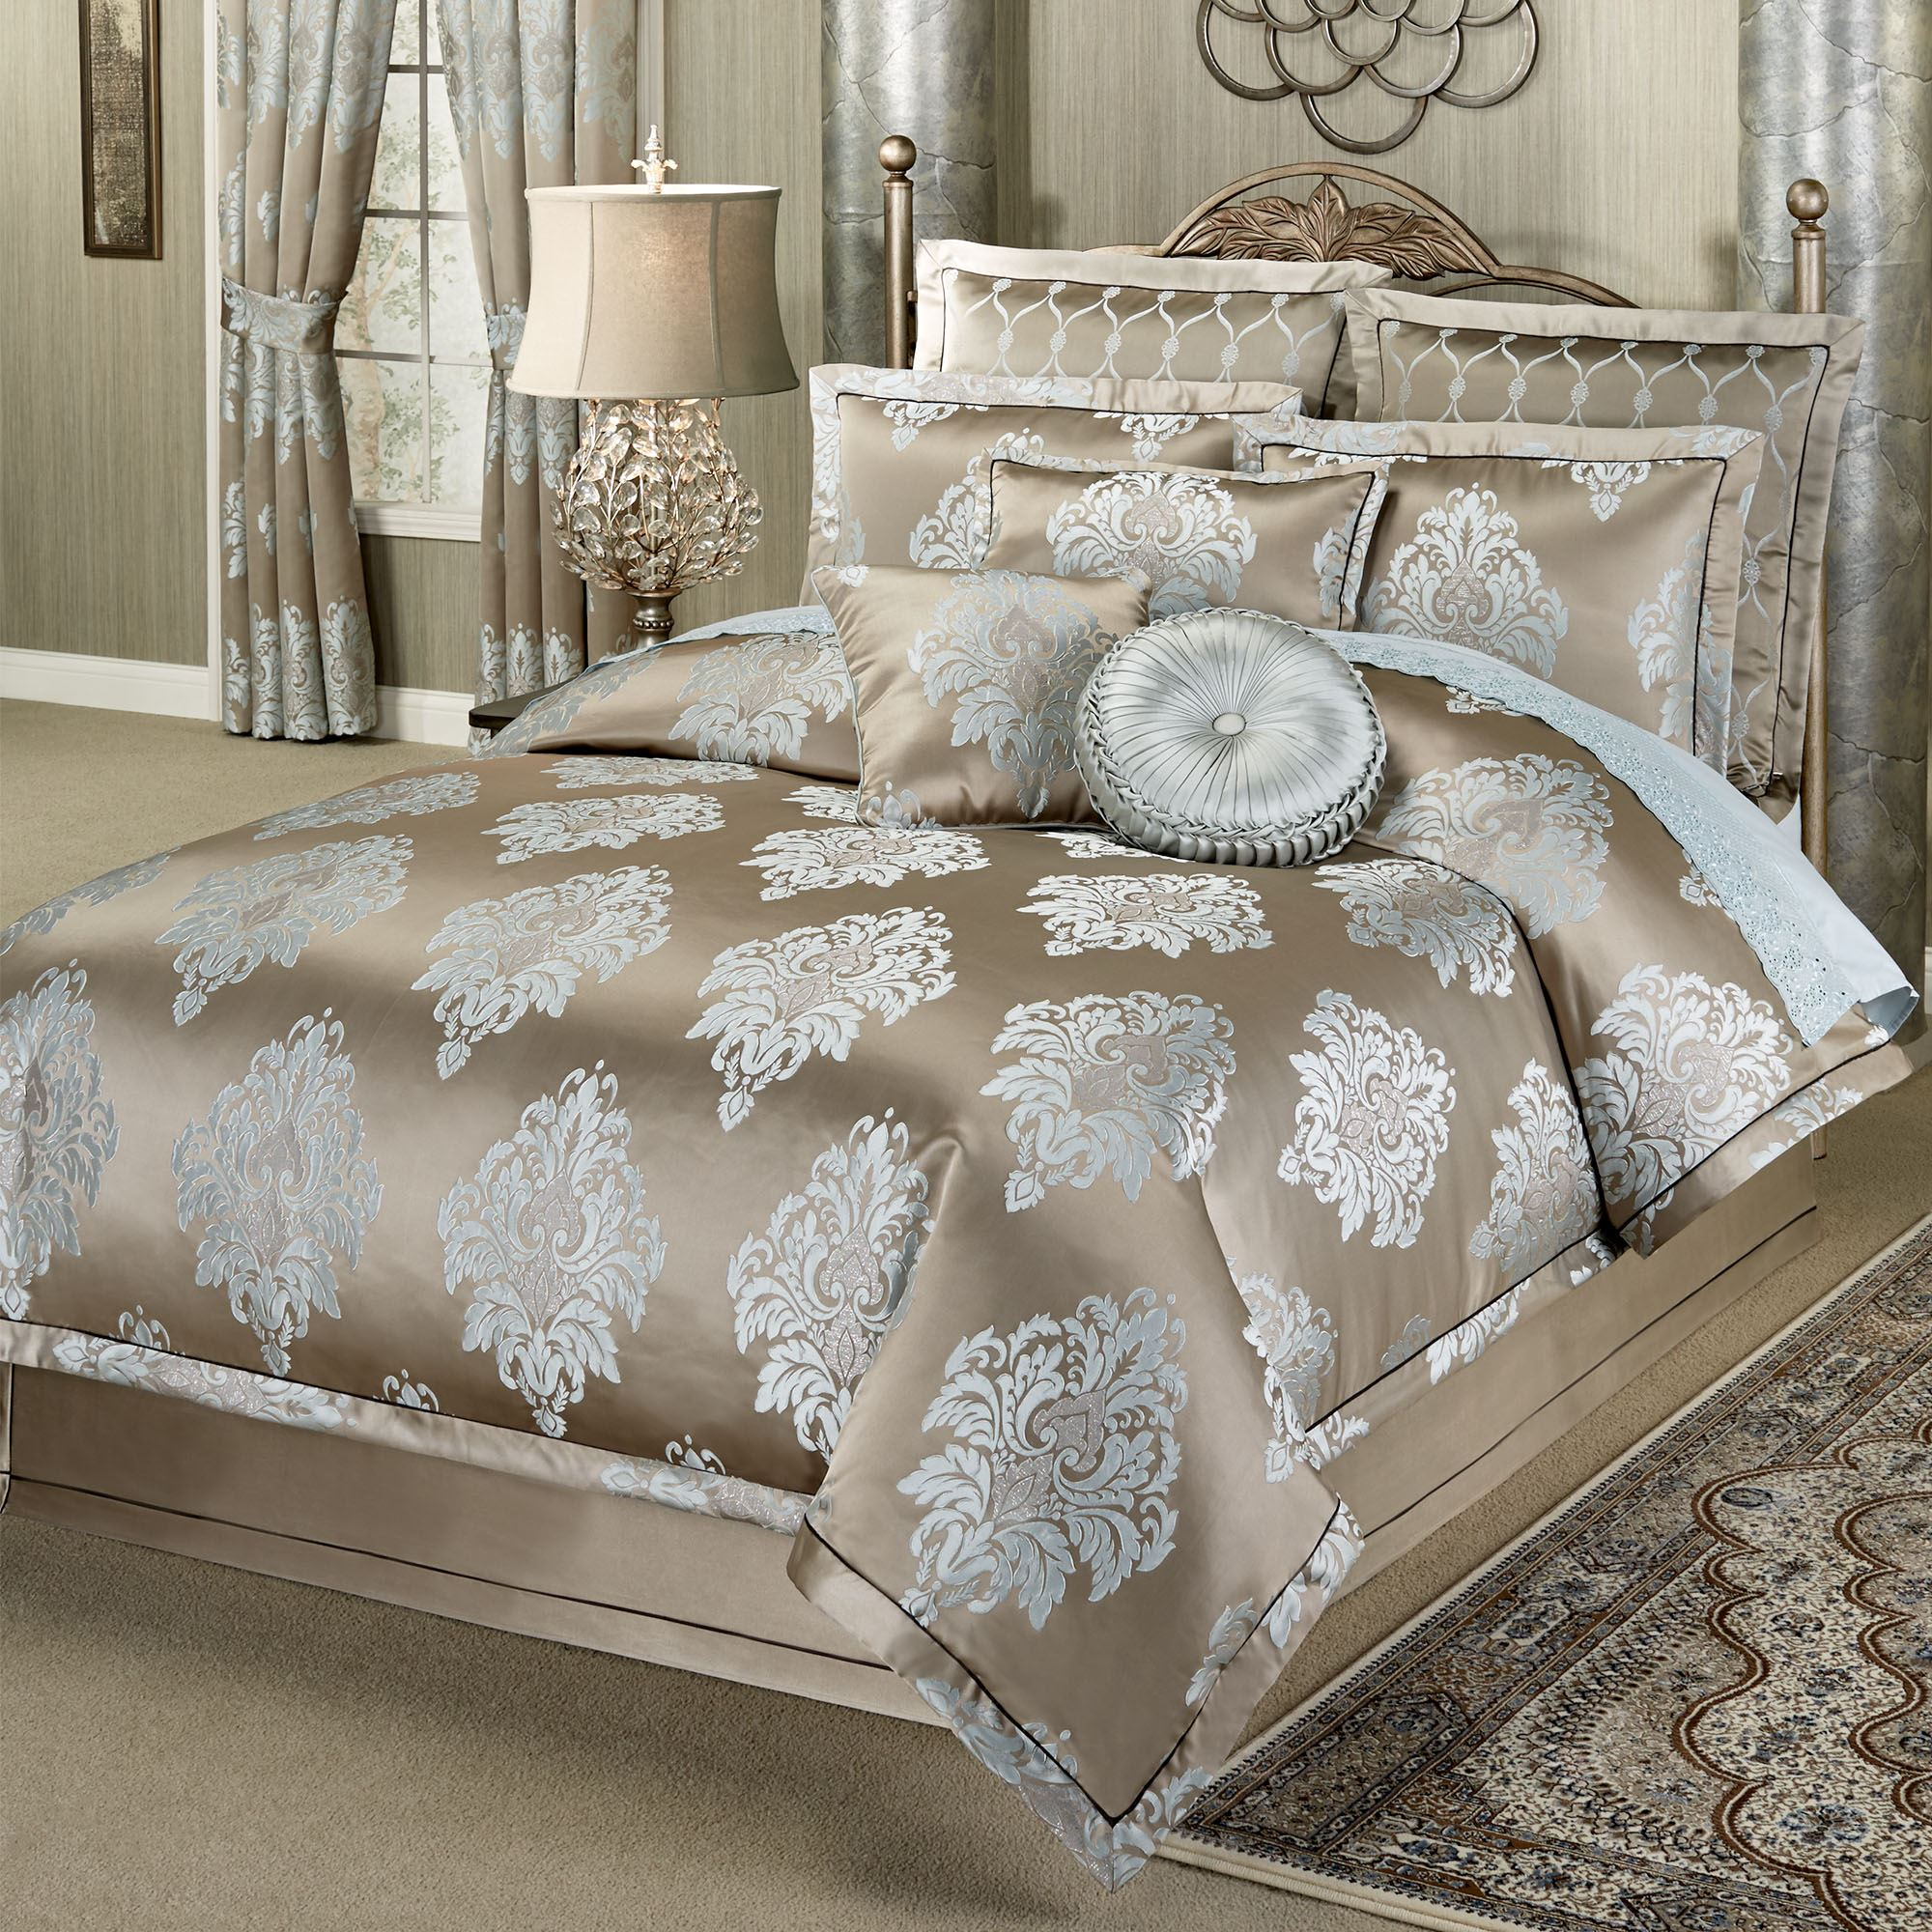 Athena Medallion Comforter Bedding By J Queen New York